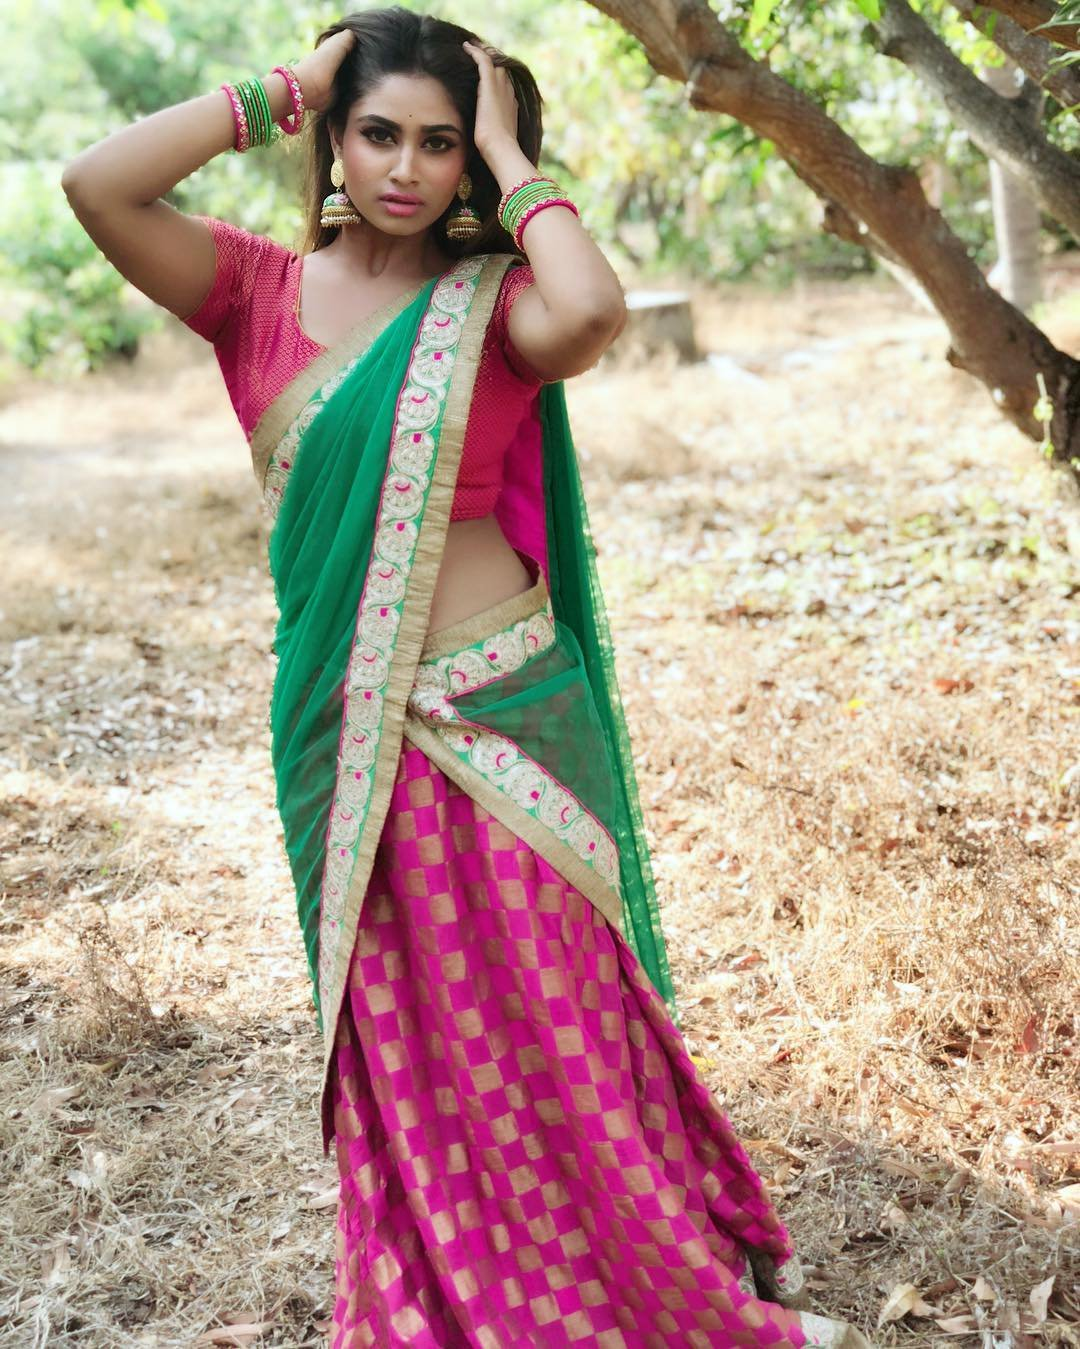 shivani narayanan Latest Saree photos